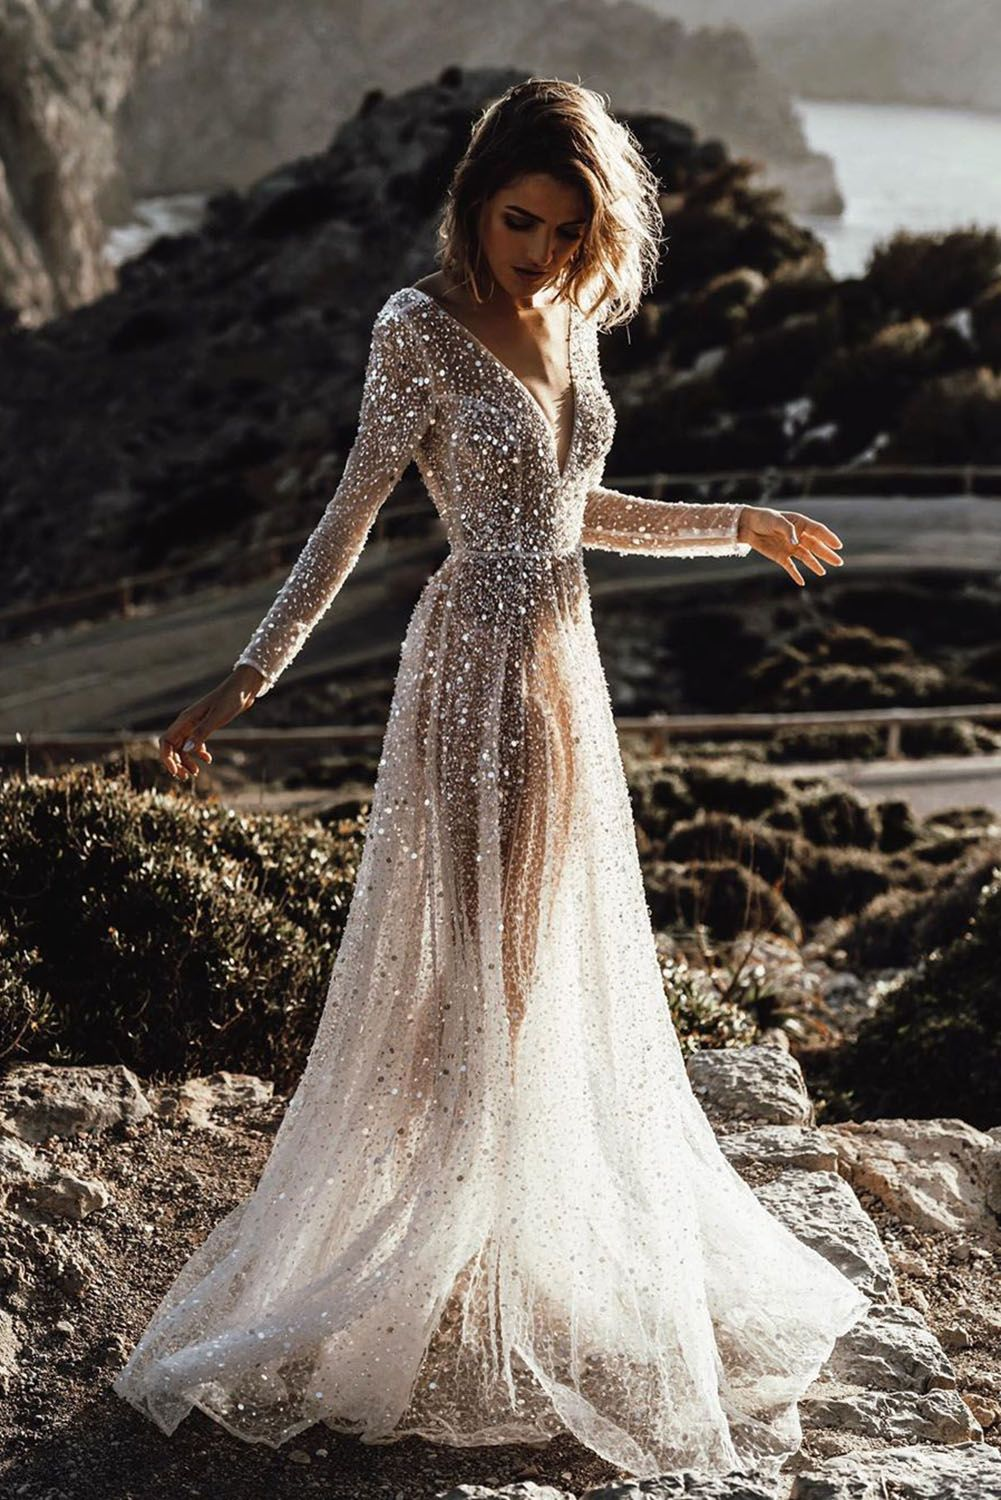 Deep V Neck Long Sleeve Sequin Tulle Wedding Long Dress Gowns Dresses Indian Dresses To Wear To A Wedding Gowns Dresses [ 1500 x 1001 Pixel ]